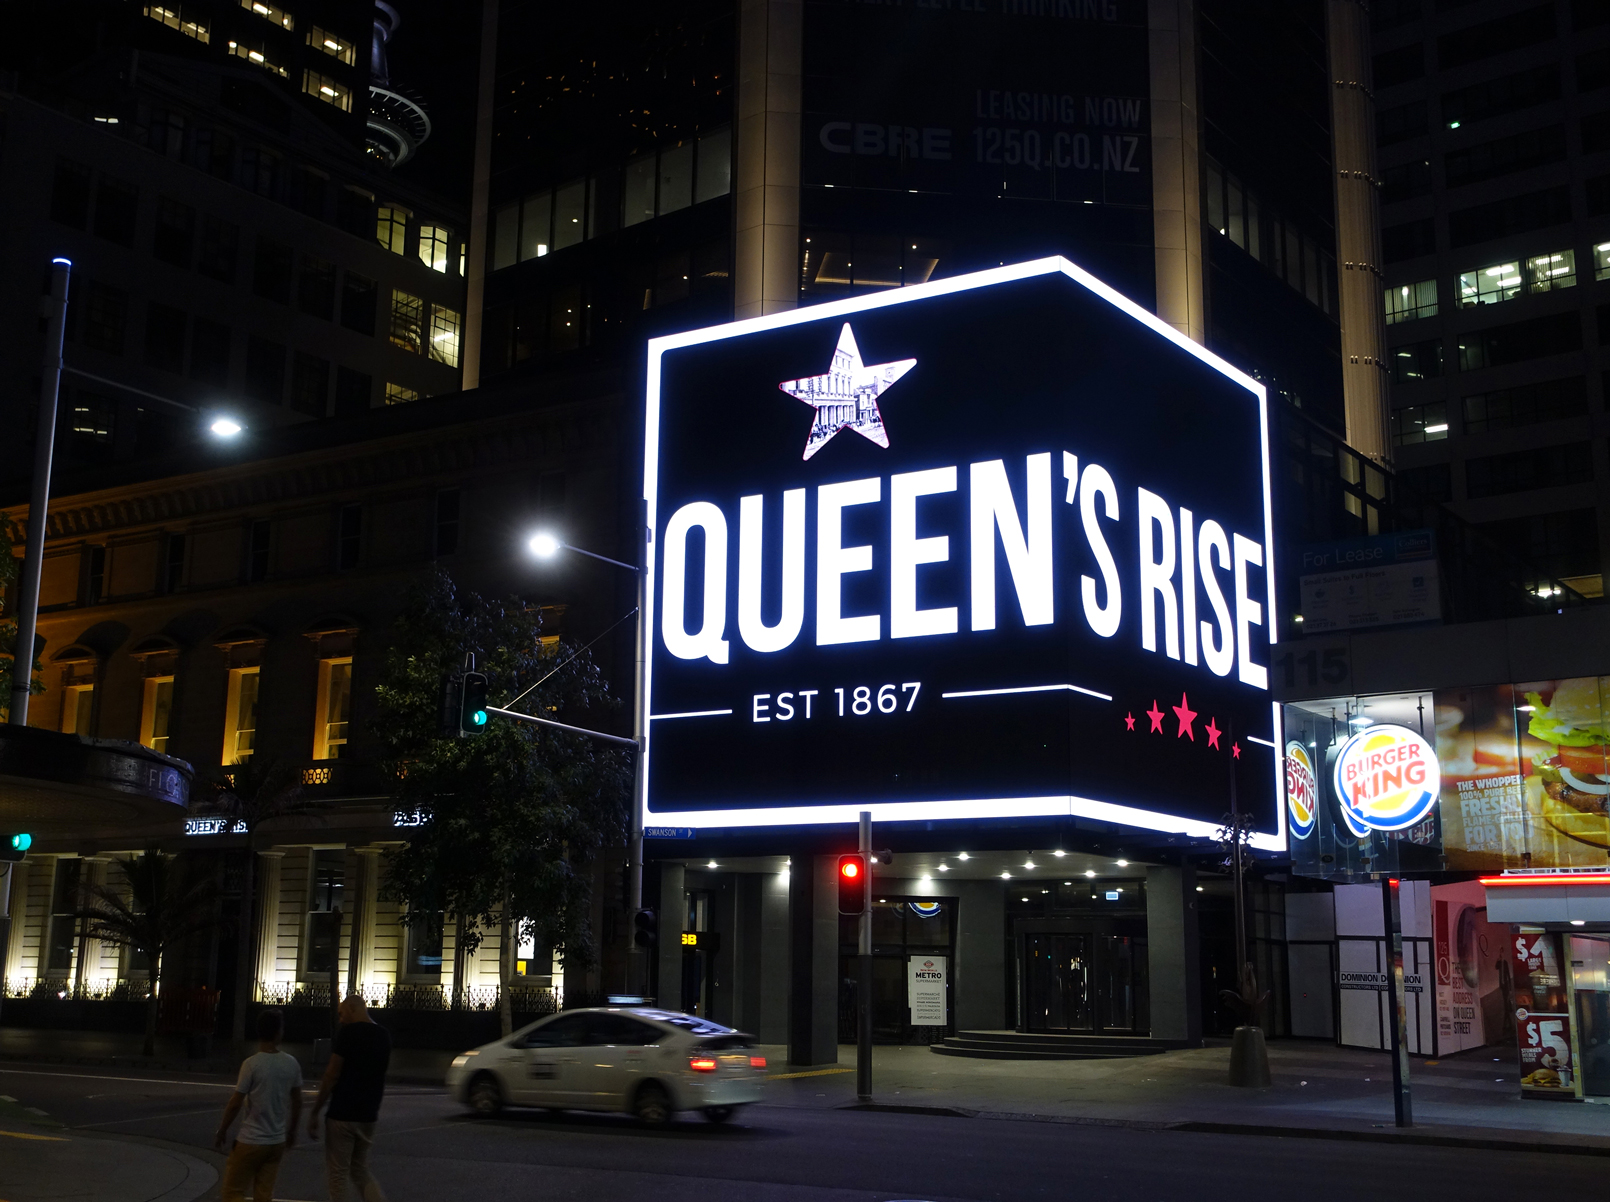 Queens Rise Building Facade LED Billboard Digital Advertising Sign